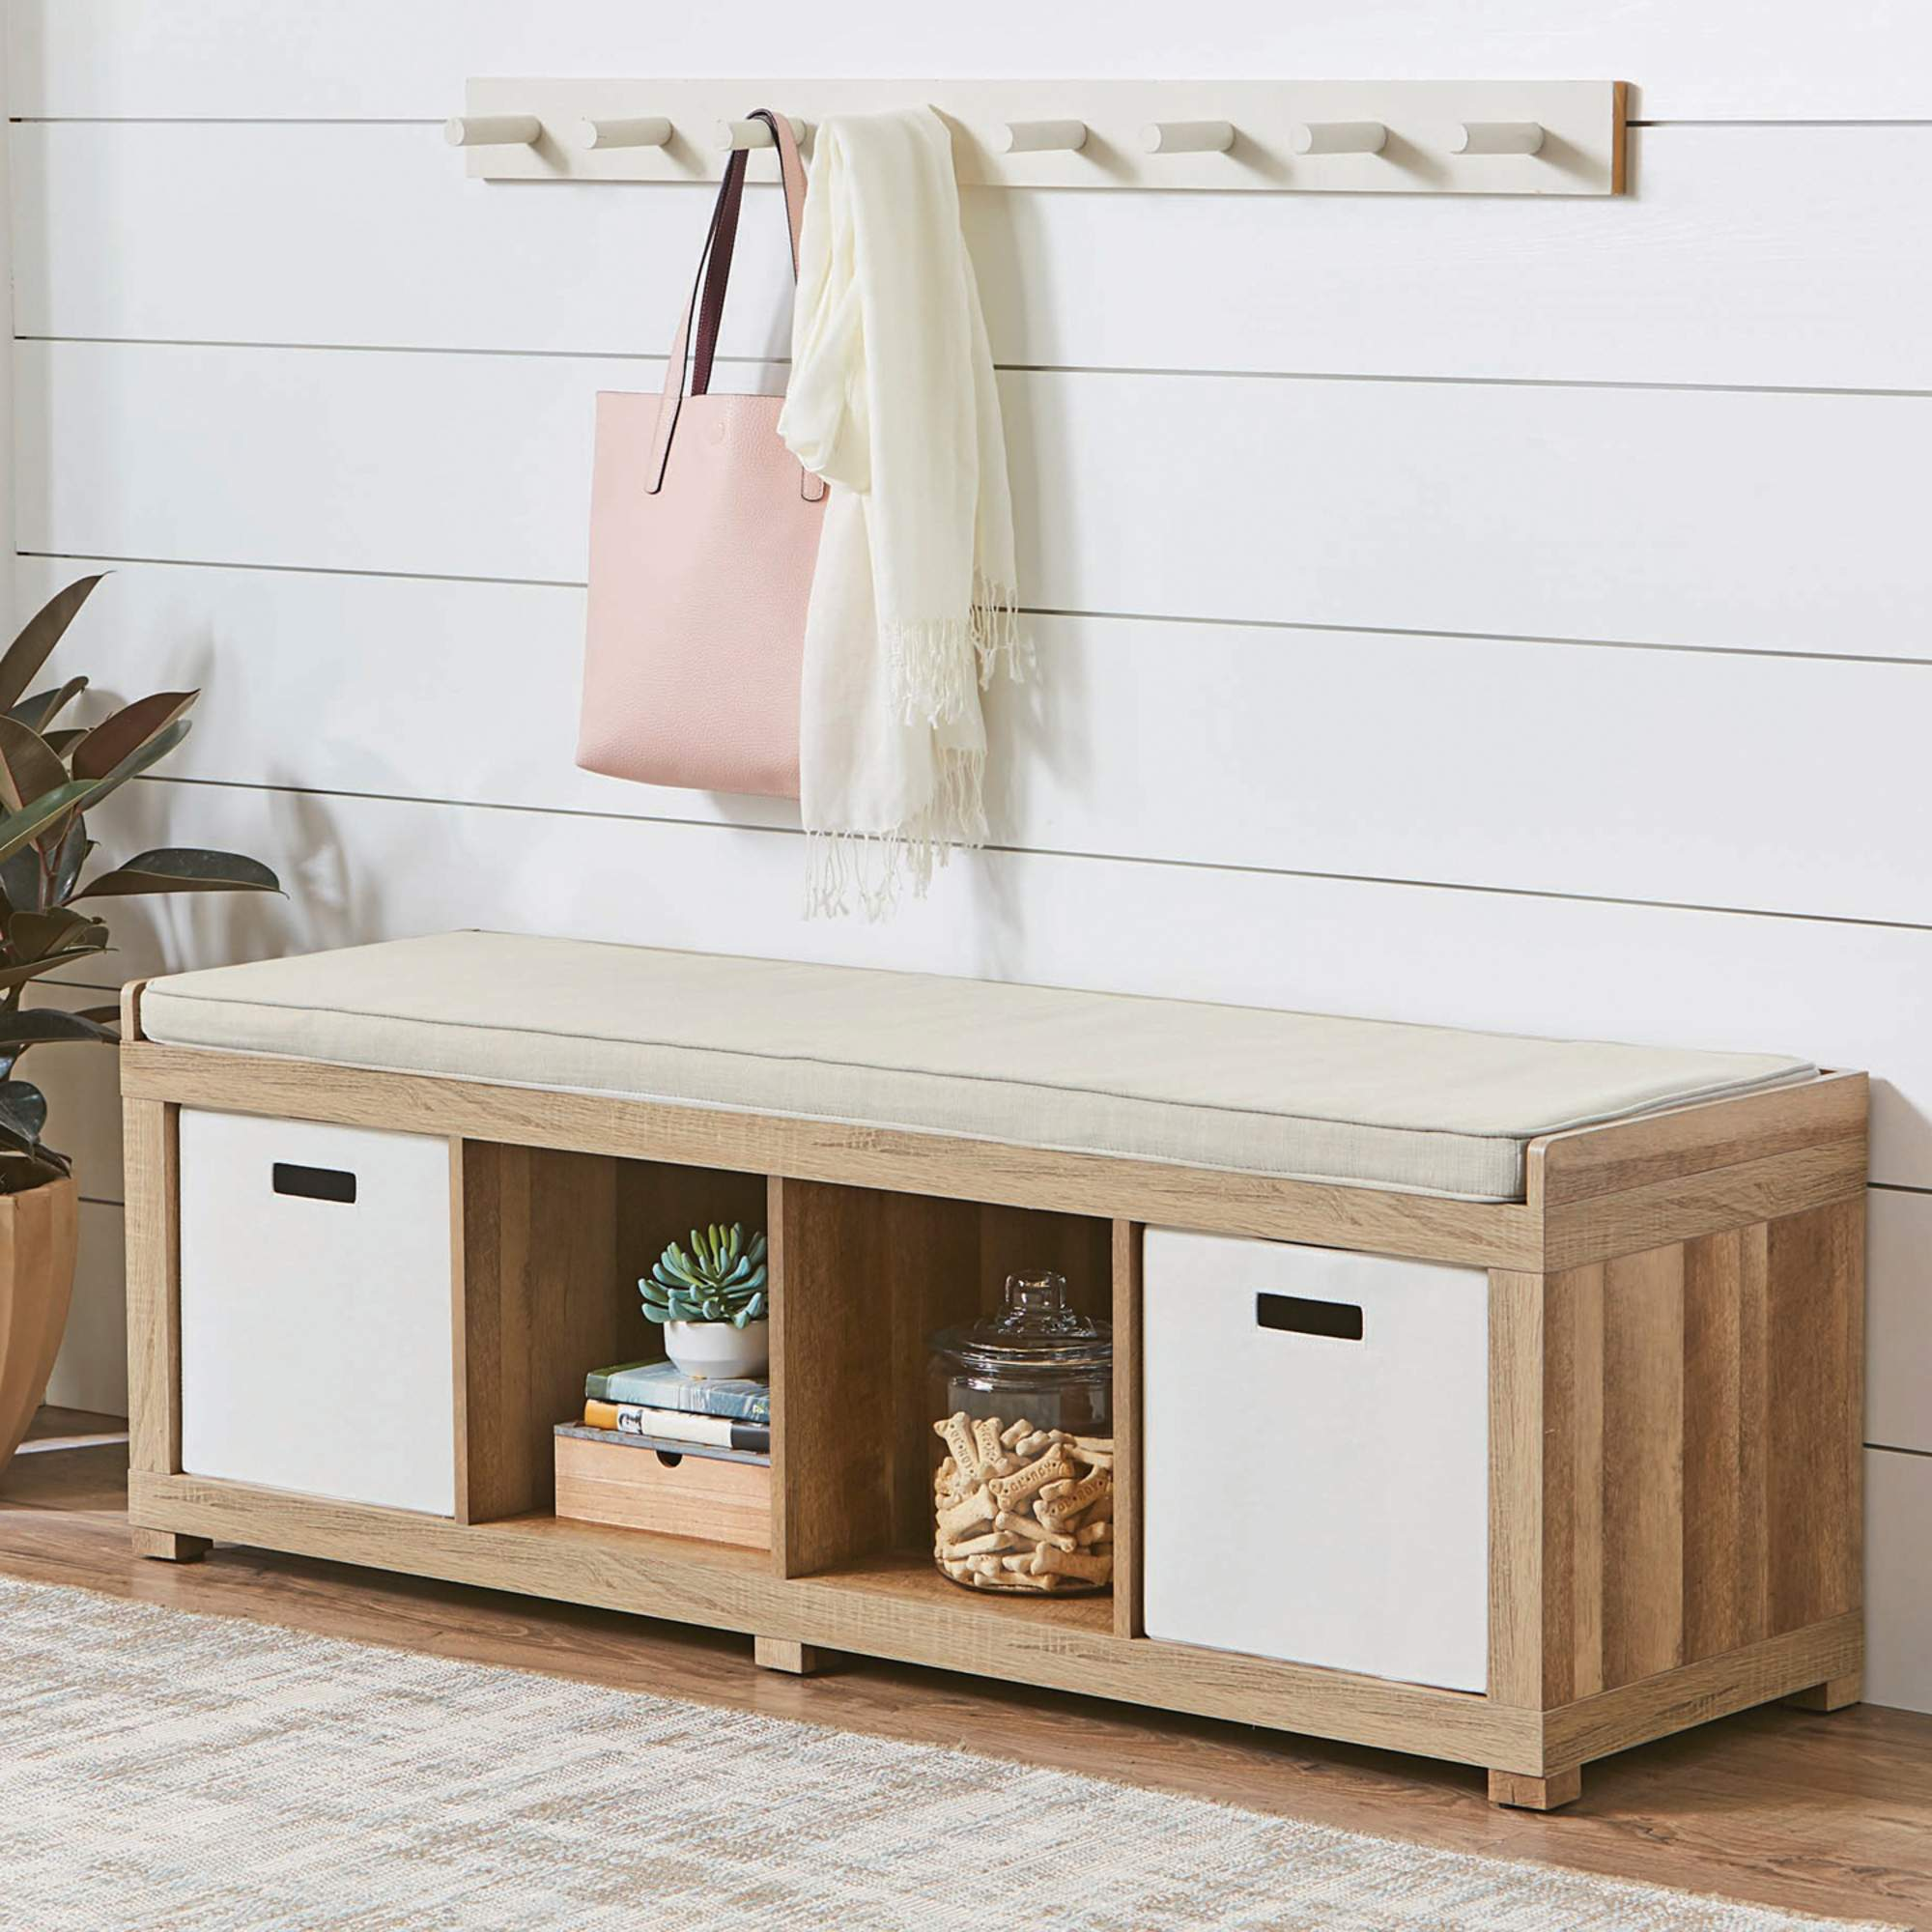 Better Homes And Gardens 4 Cube Organizer Storage Bench Multiple